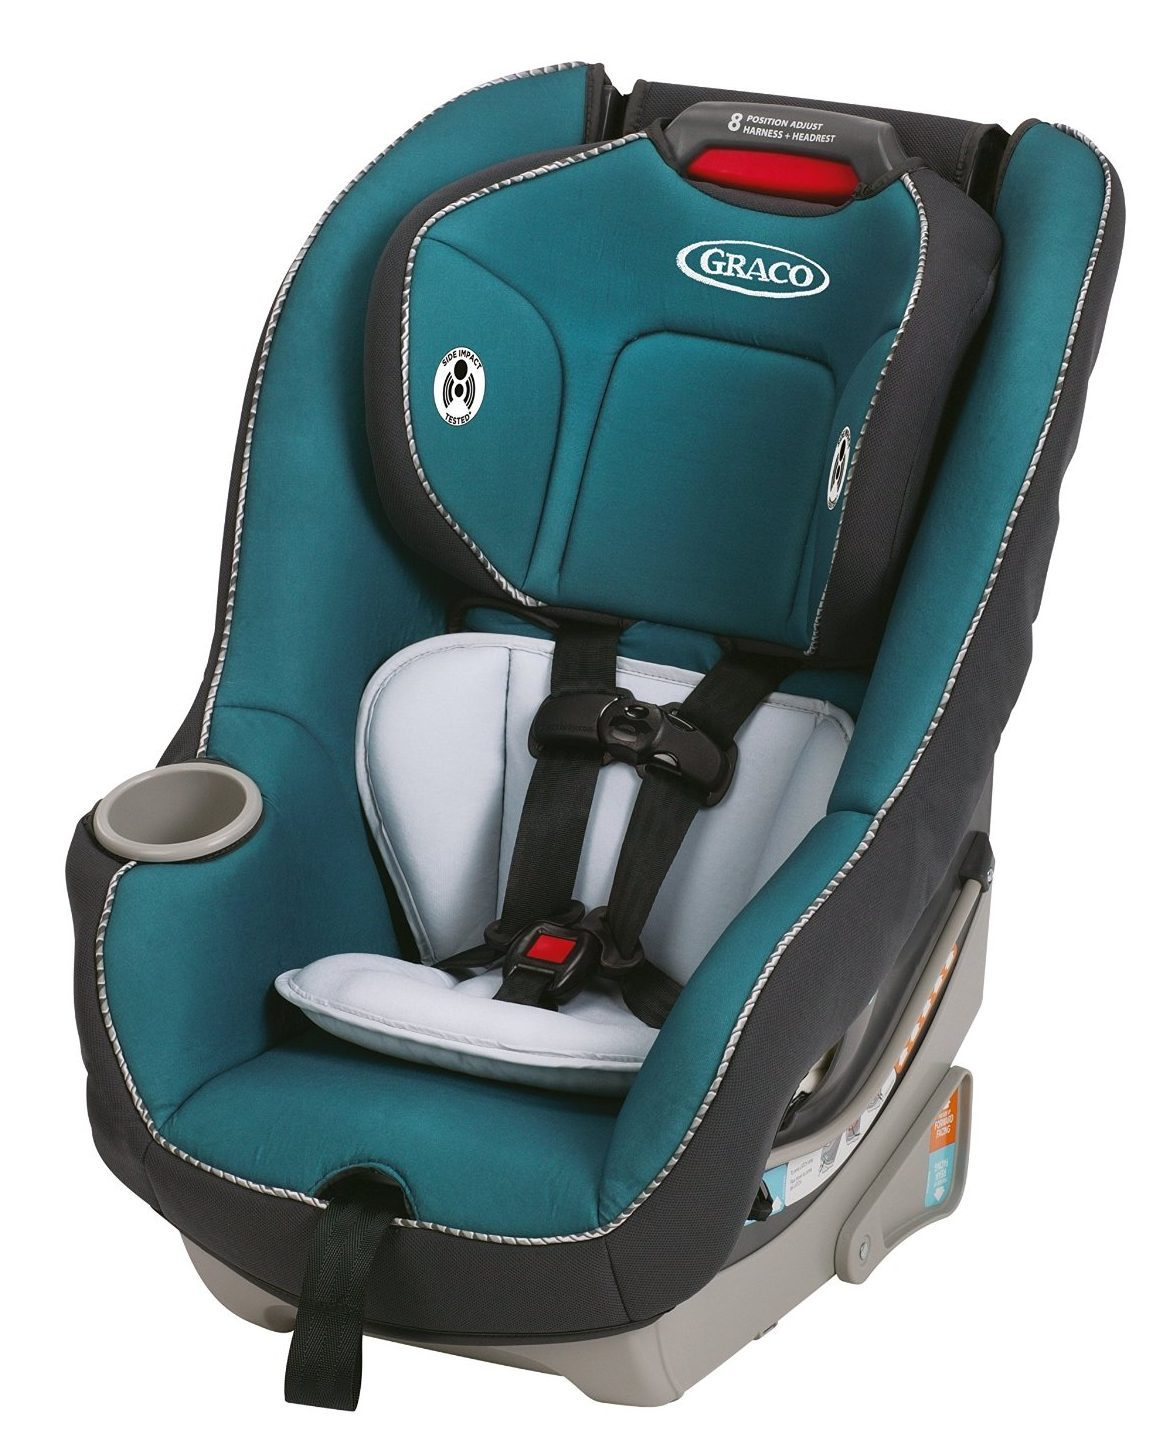 The Graco Contender 65 Convertible Car Seat Is A Popular Choice For Parents Why Because It Can Be Used Rear Facing Up To 40 Pounds And Forward